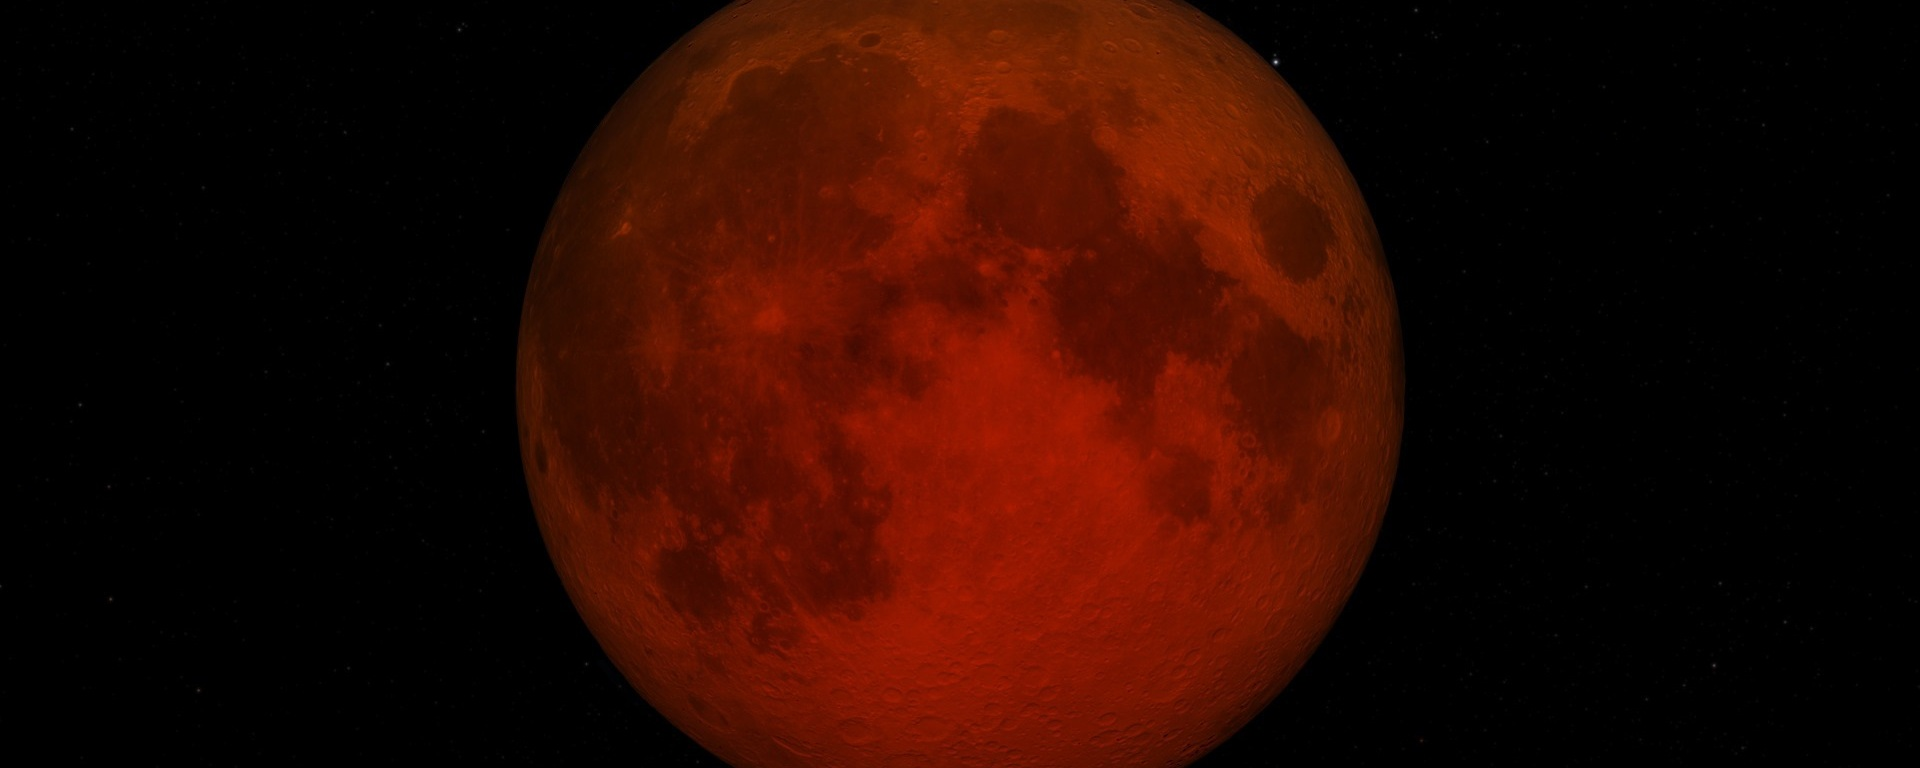 blood moon eclipse in leo - photo #18